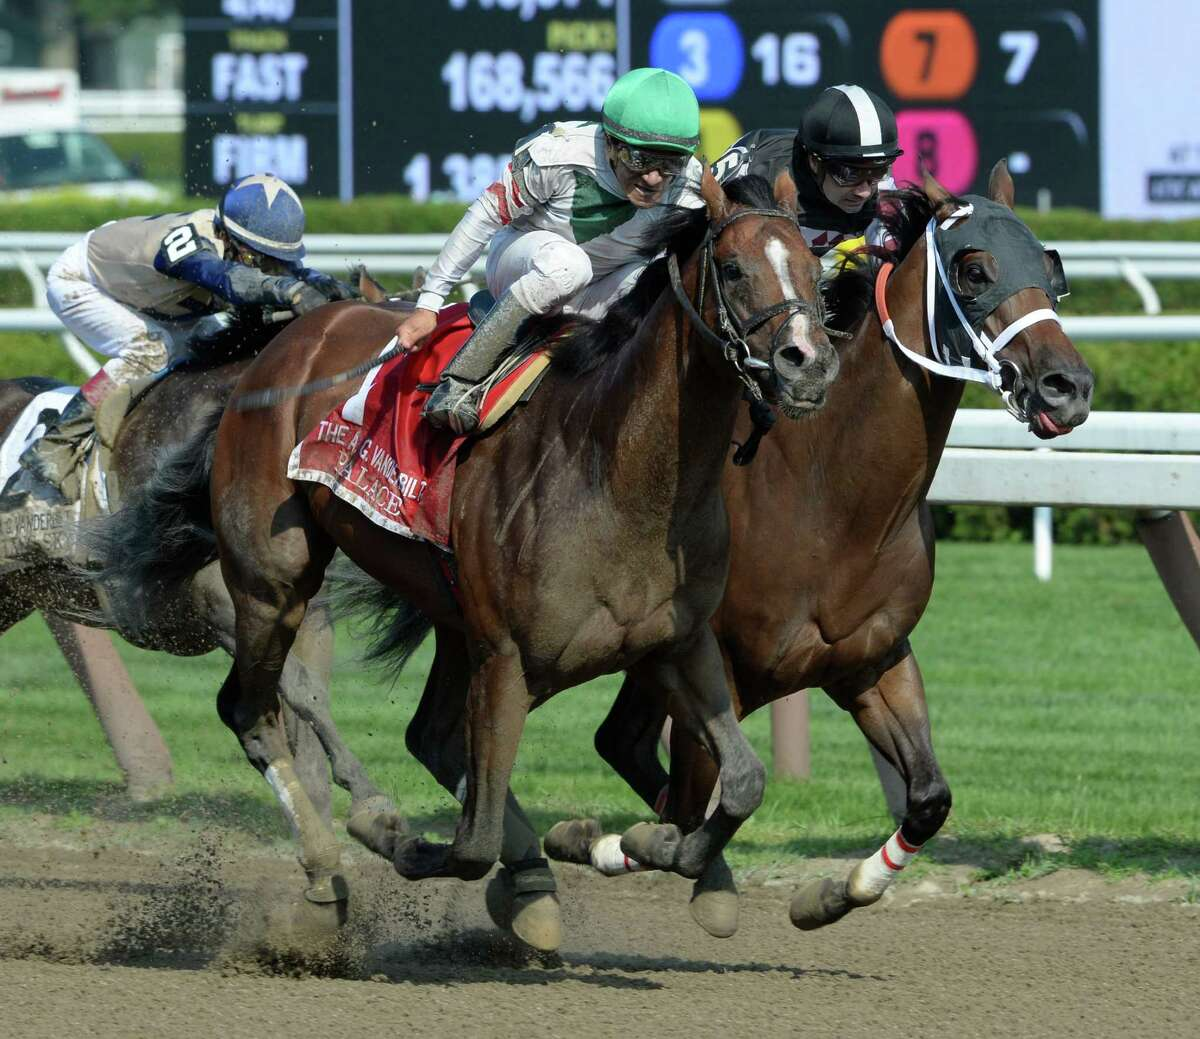 Palace with jockey Cornelio Velasquez wins the 30th running of the Alfred G. Vanderbuilt Saturday afternoon Aug. 2, 2014 at the Saratoga Race Course in Saratoga Springs, N.Y. (Skip Dickstein/Times Union) ORG XMIT: NYALT